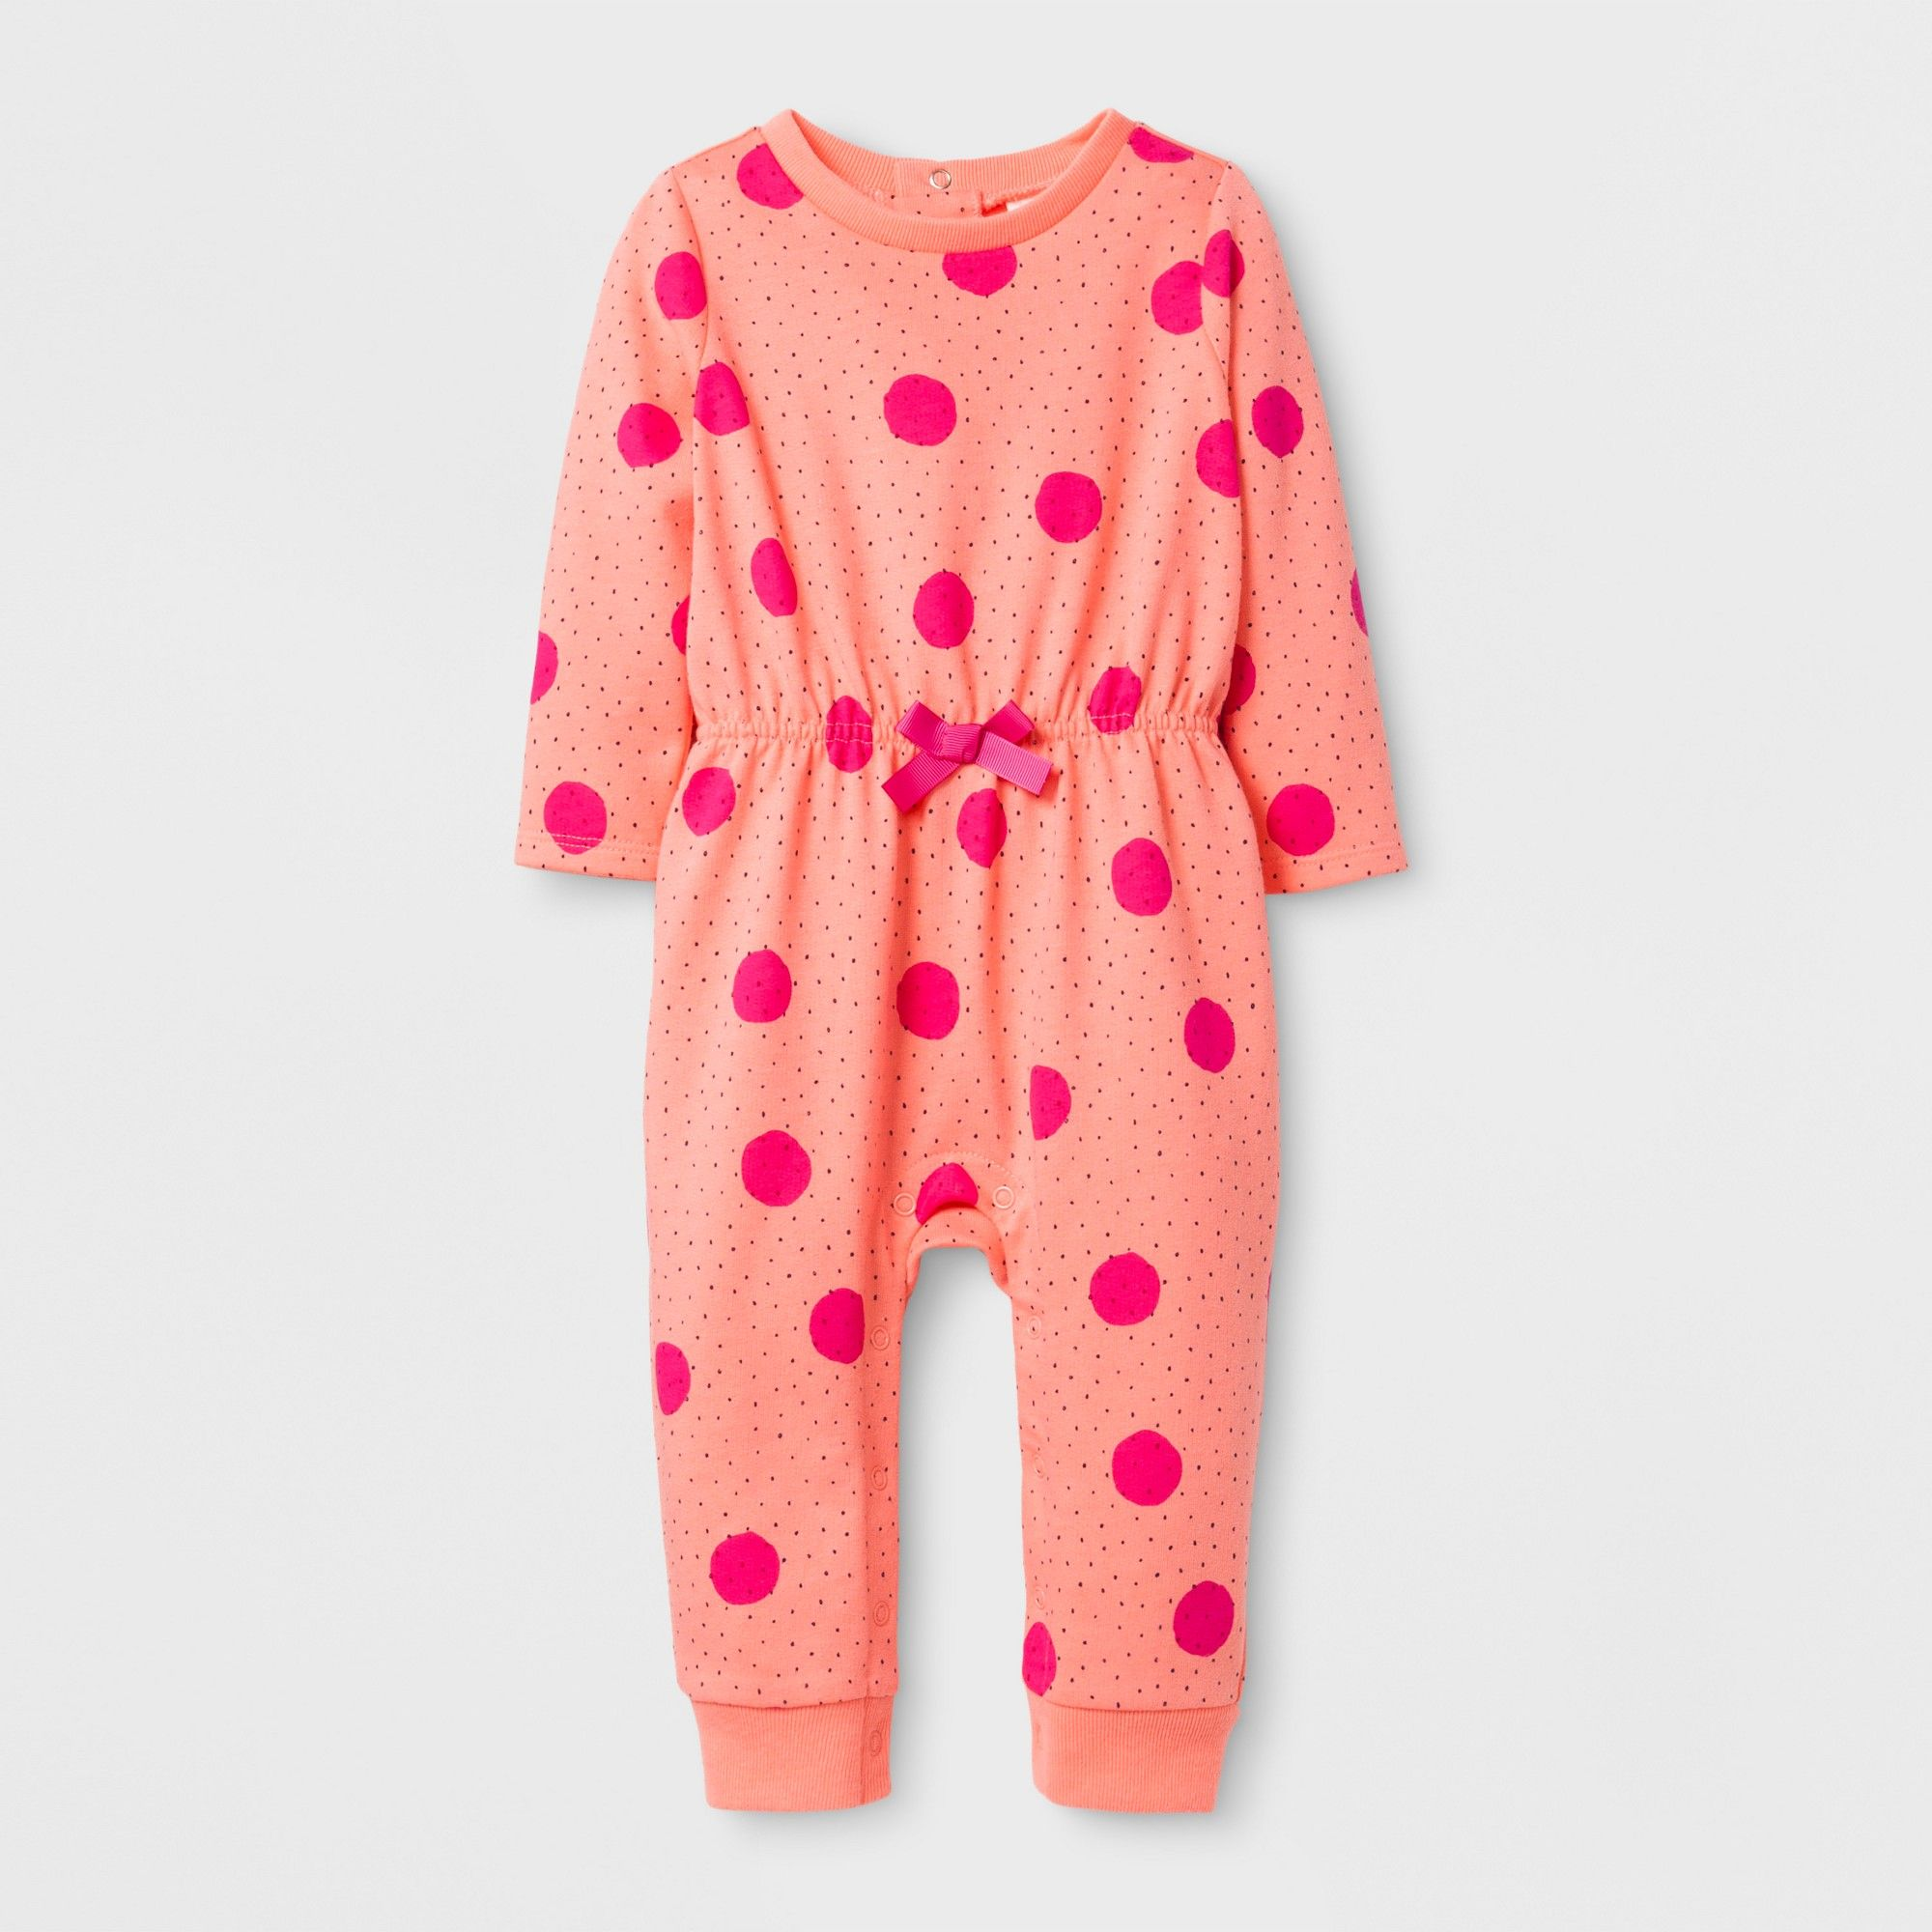 Baby Girls Dots French Terry Romper Cat & Jack Peach 18 Months